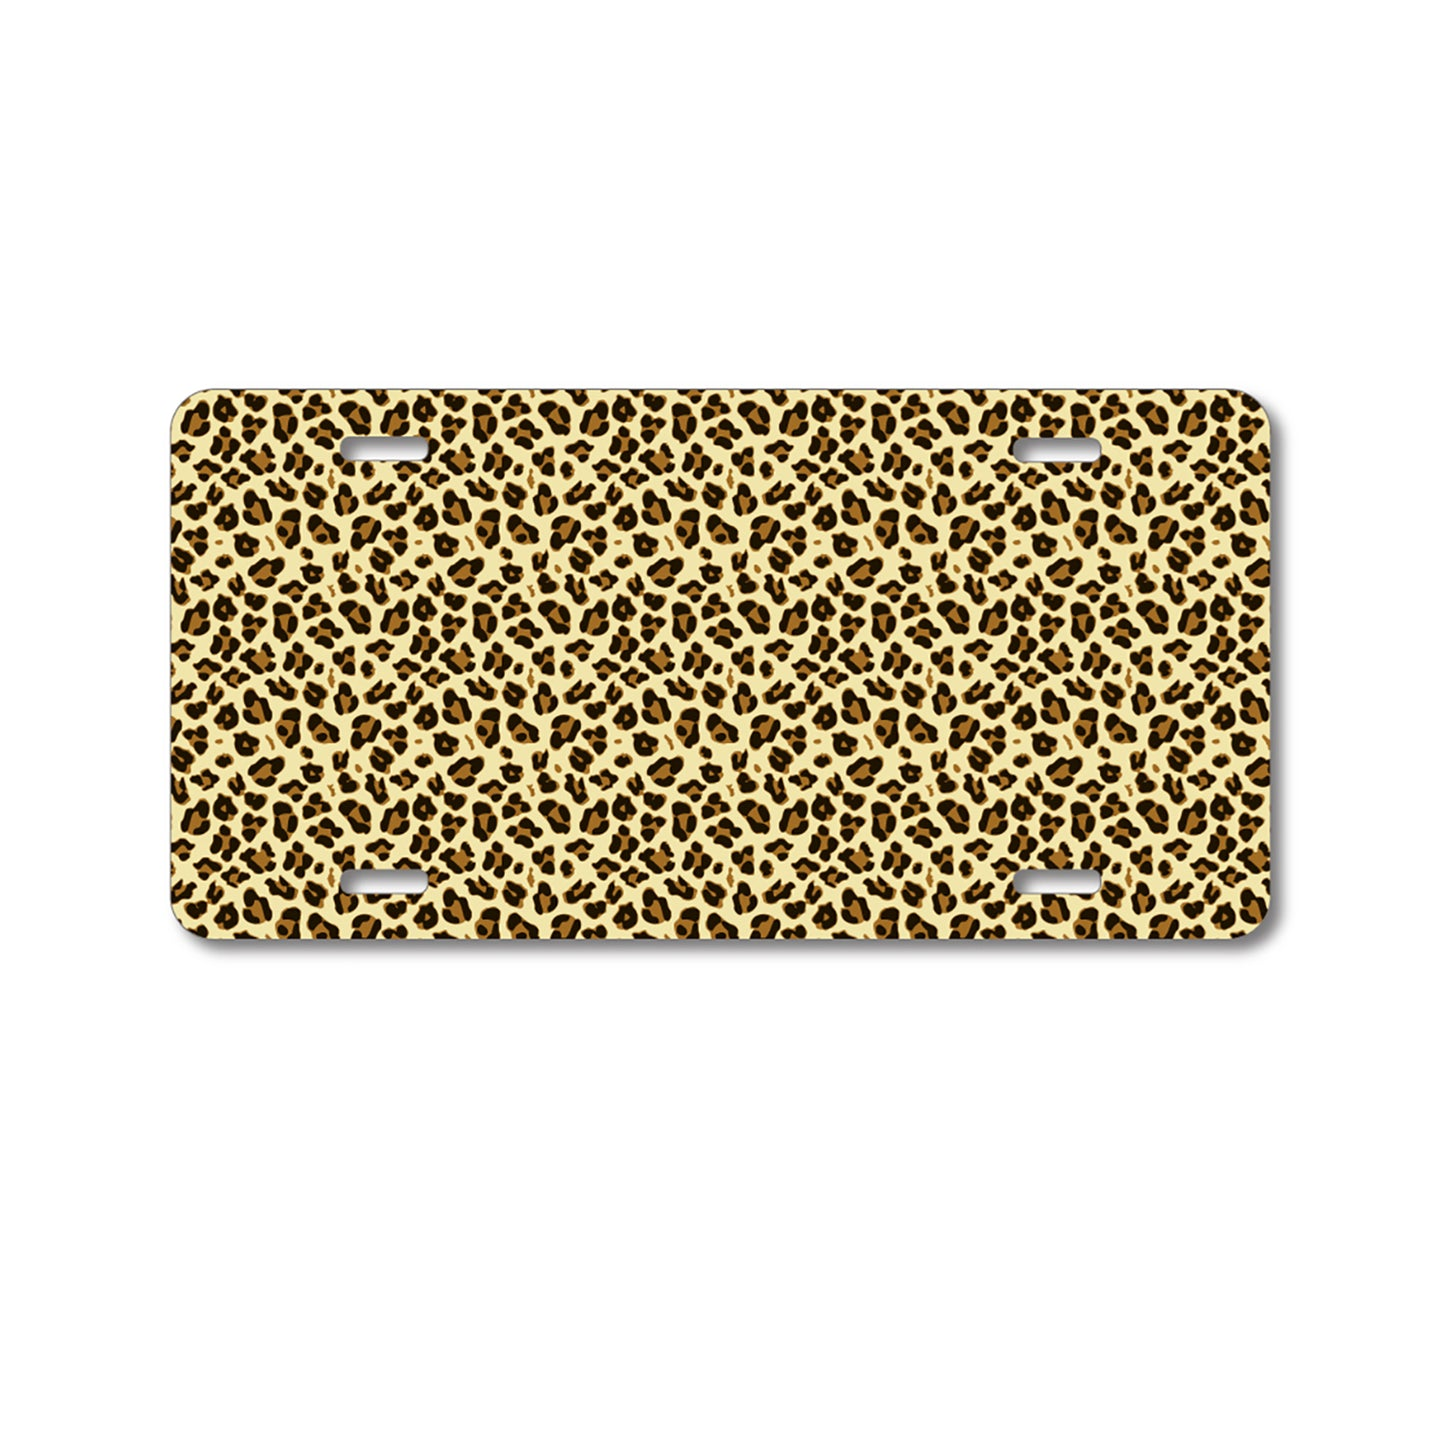 DistinctInk Custom Aluminum Decorative Vanity Front License Plate - Black Beige Tan Leopard Skin Spots